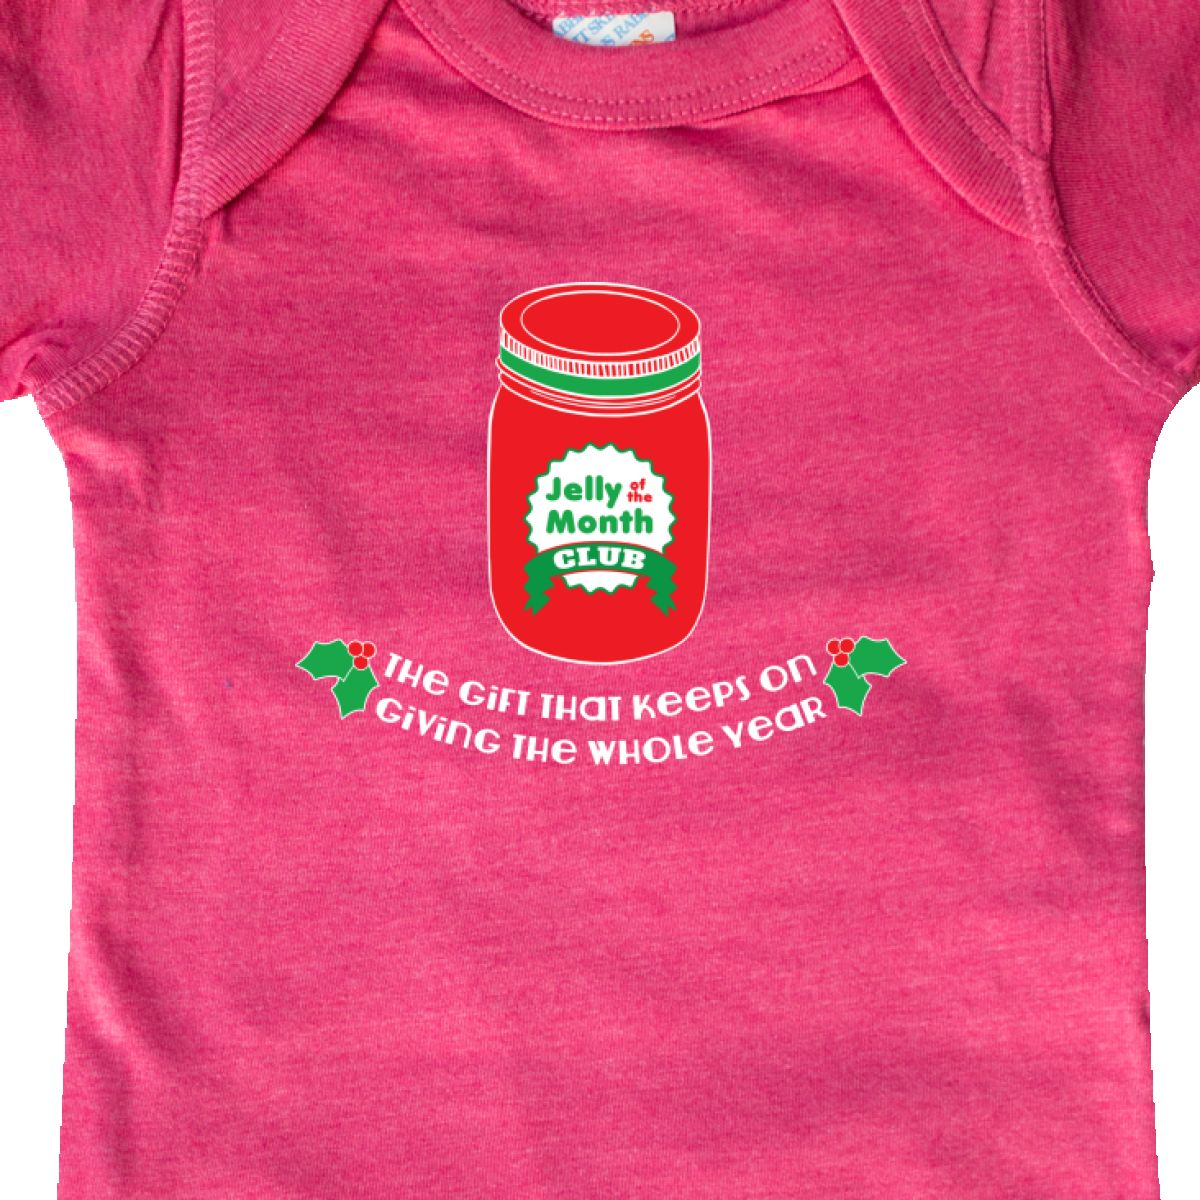 inktastic jelly of the month club infant creeper christmas vacation funny clark - Jelly Of The Month Club Christmas Vacation